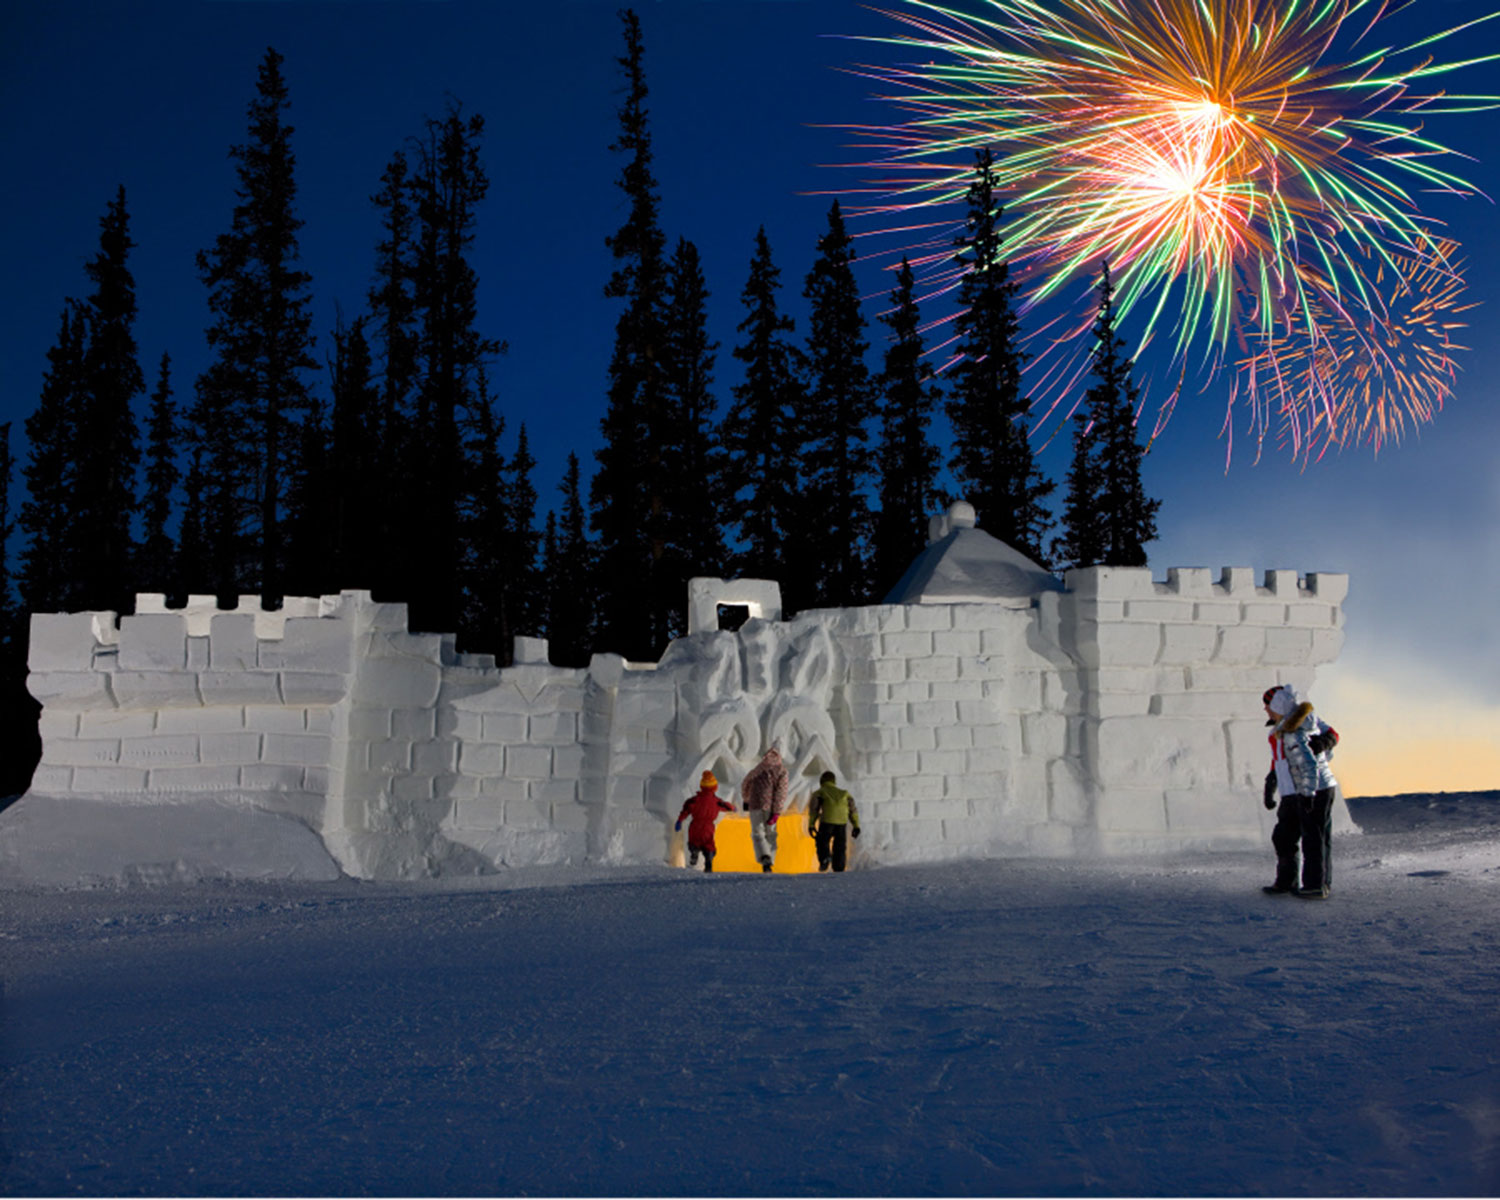 The world's largest snow fort at Keystone Resort, Colorado.